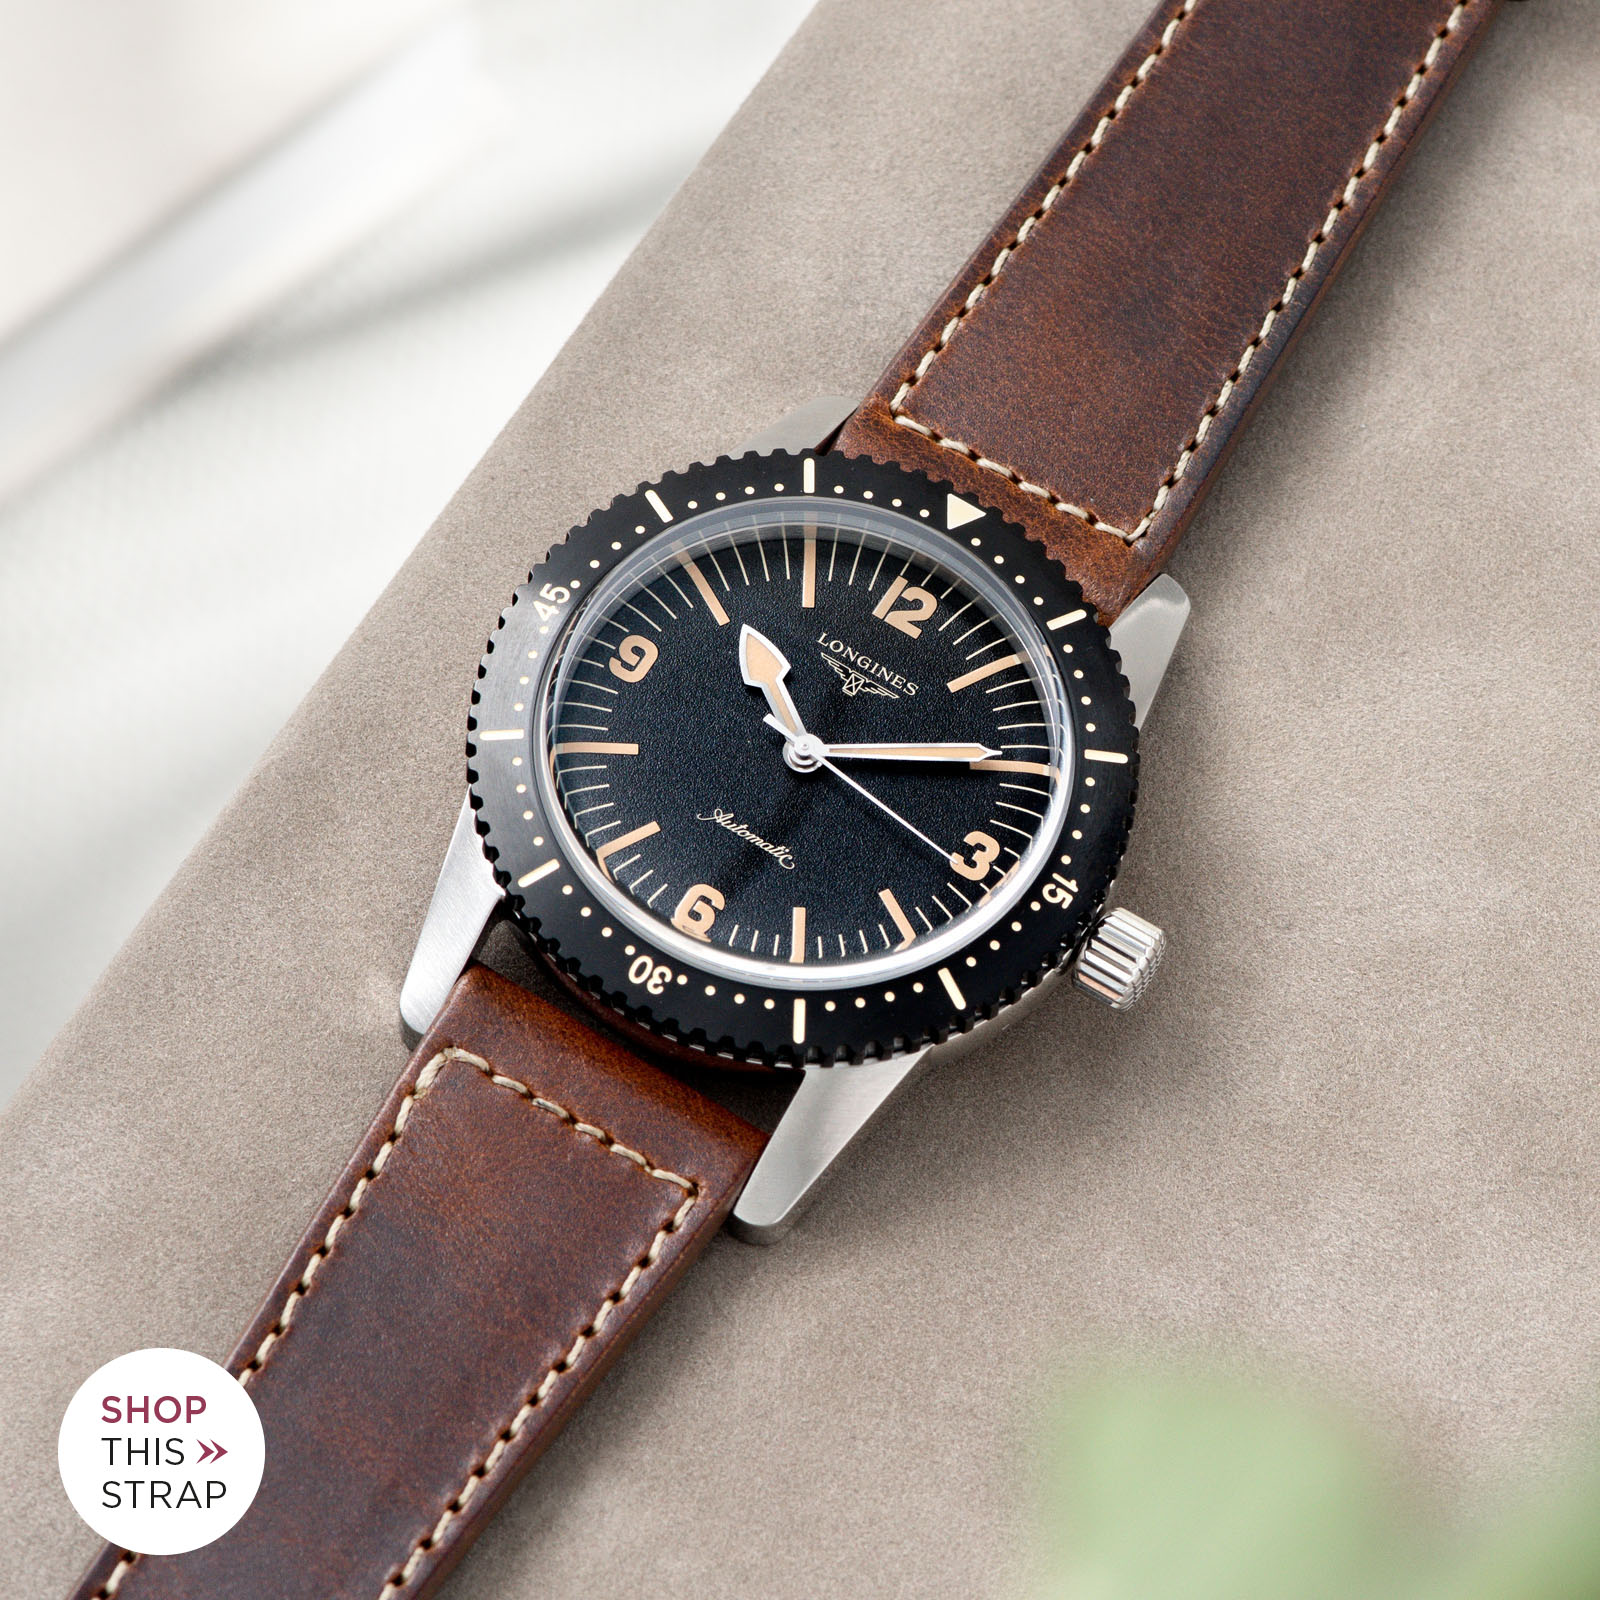 Bulang and Sons_Strap Guide_Longines Skin Diver_Siena Brown Boxed Stitch Leather Watch Strap